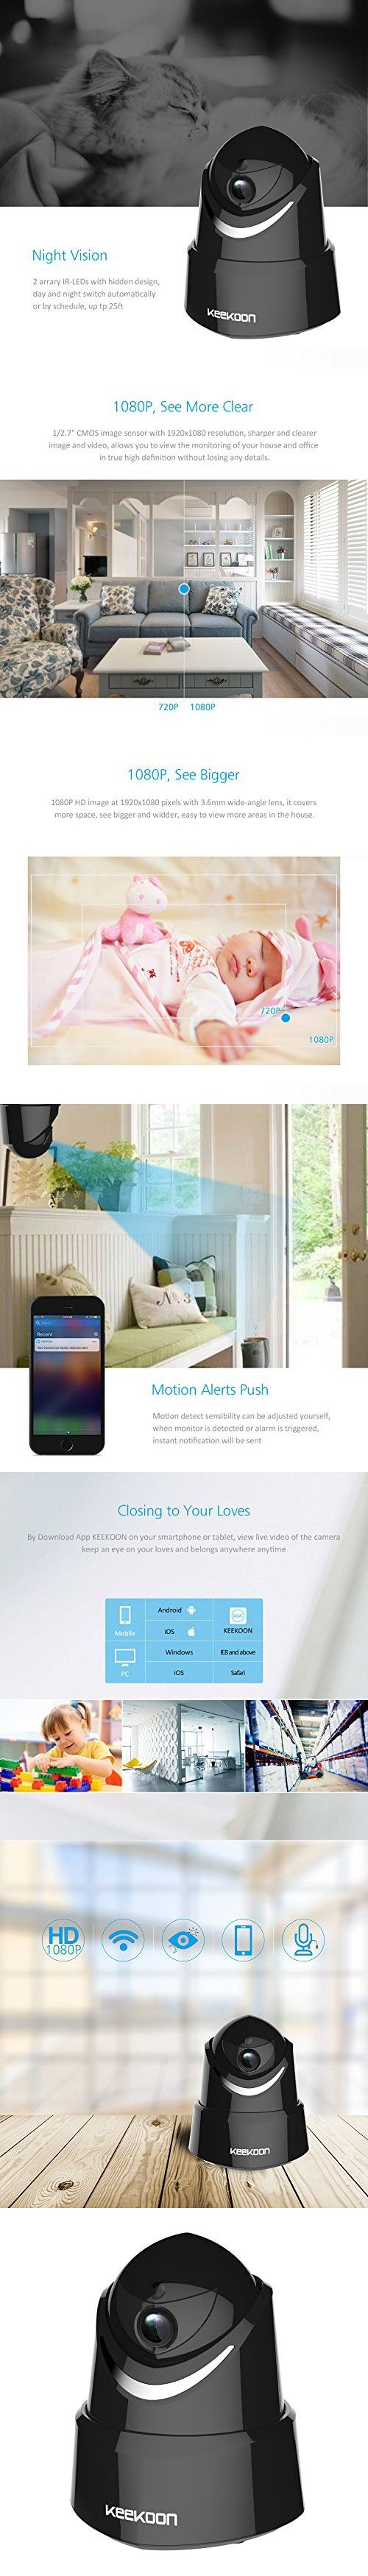 KeeKoon 1080P Wireless/Wired IP Camera ,Baby Monitor with Two-Way Talk & Pan/Tilt & Night Vision[Black]